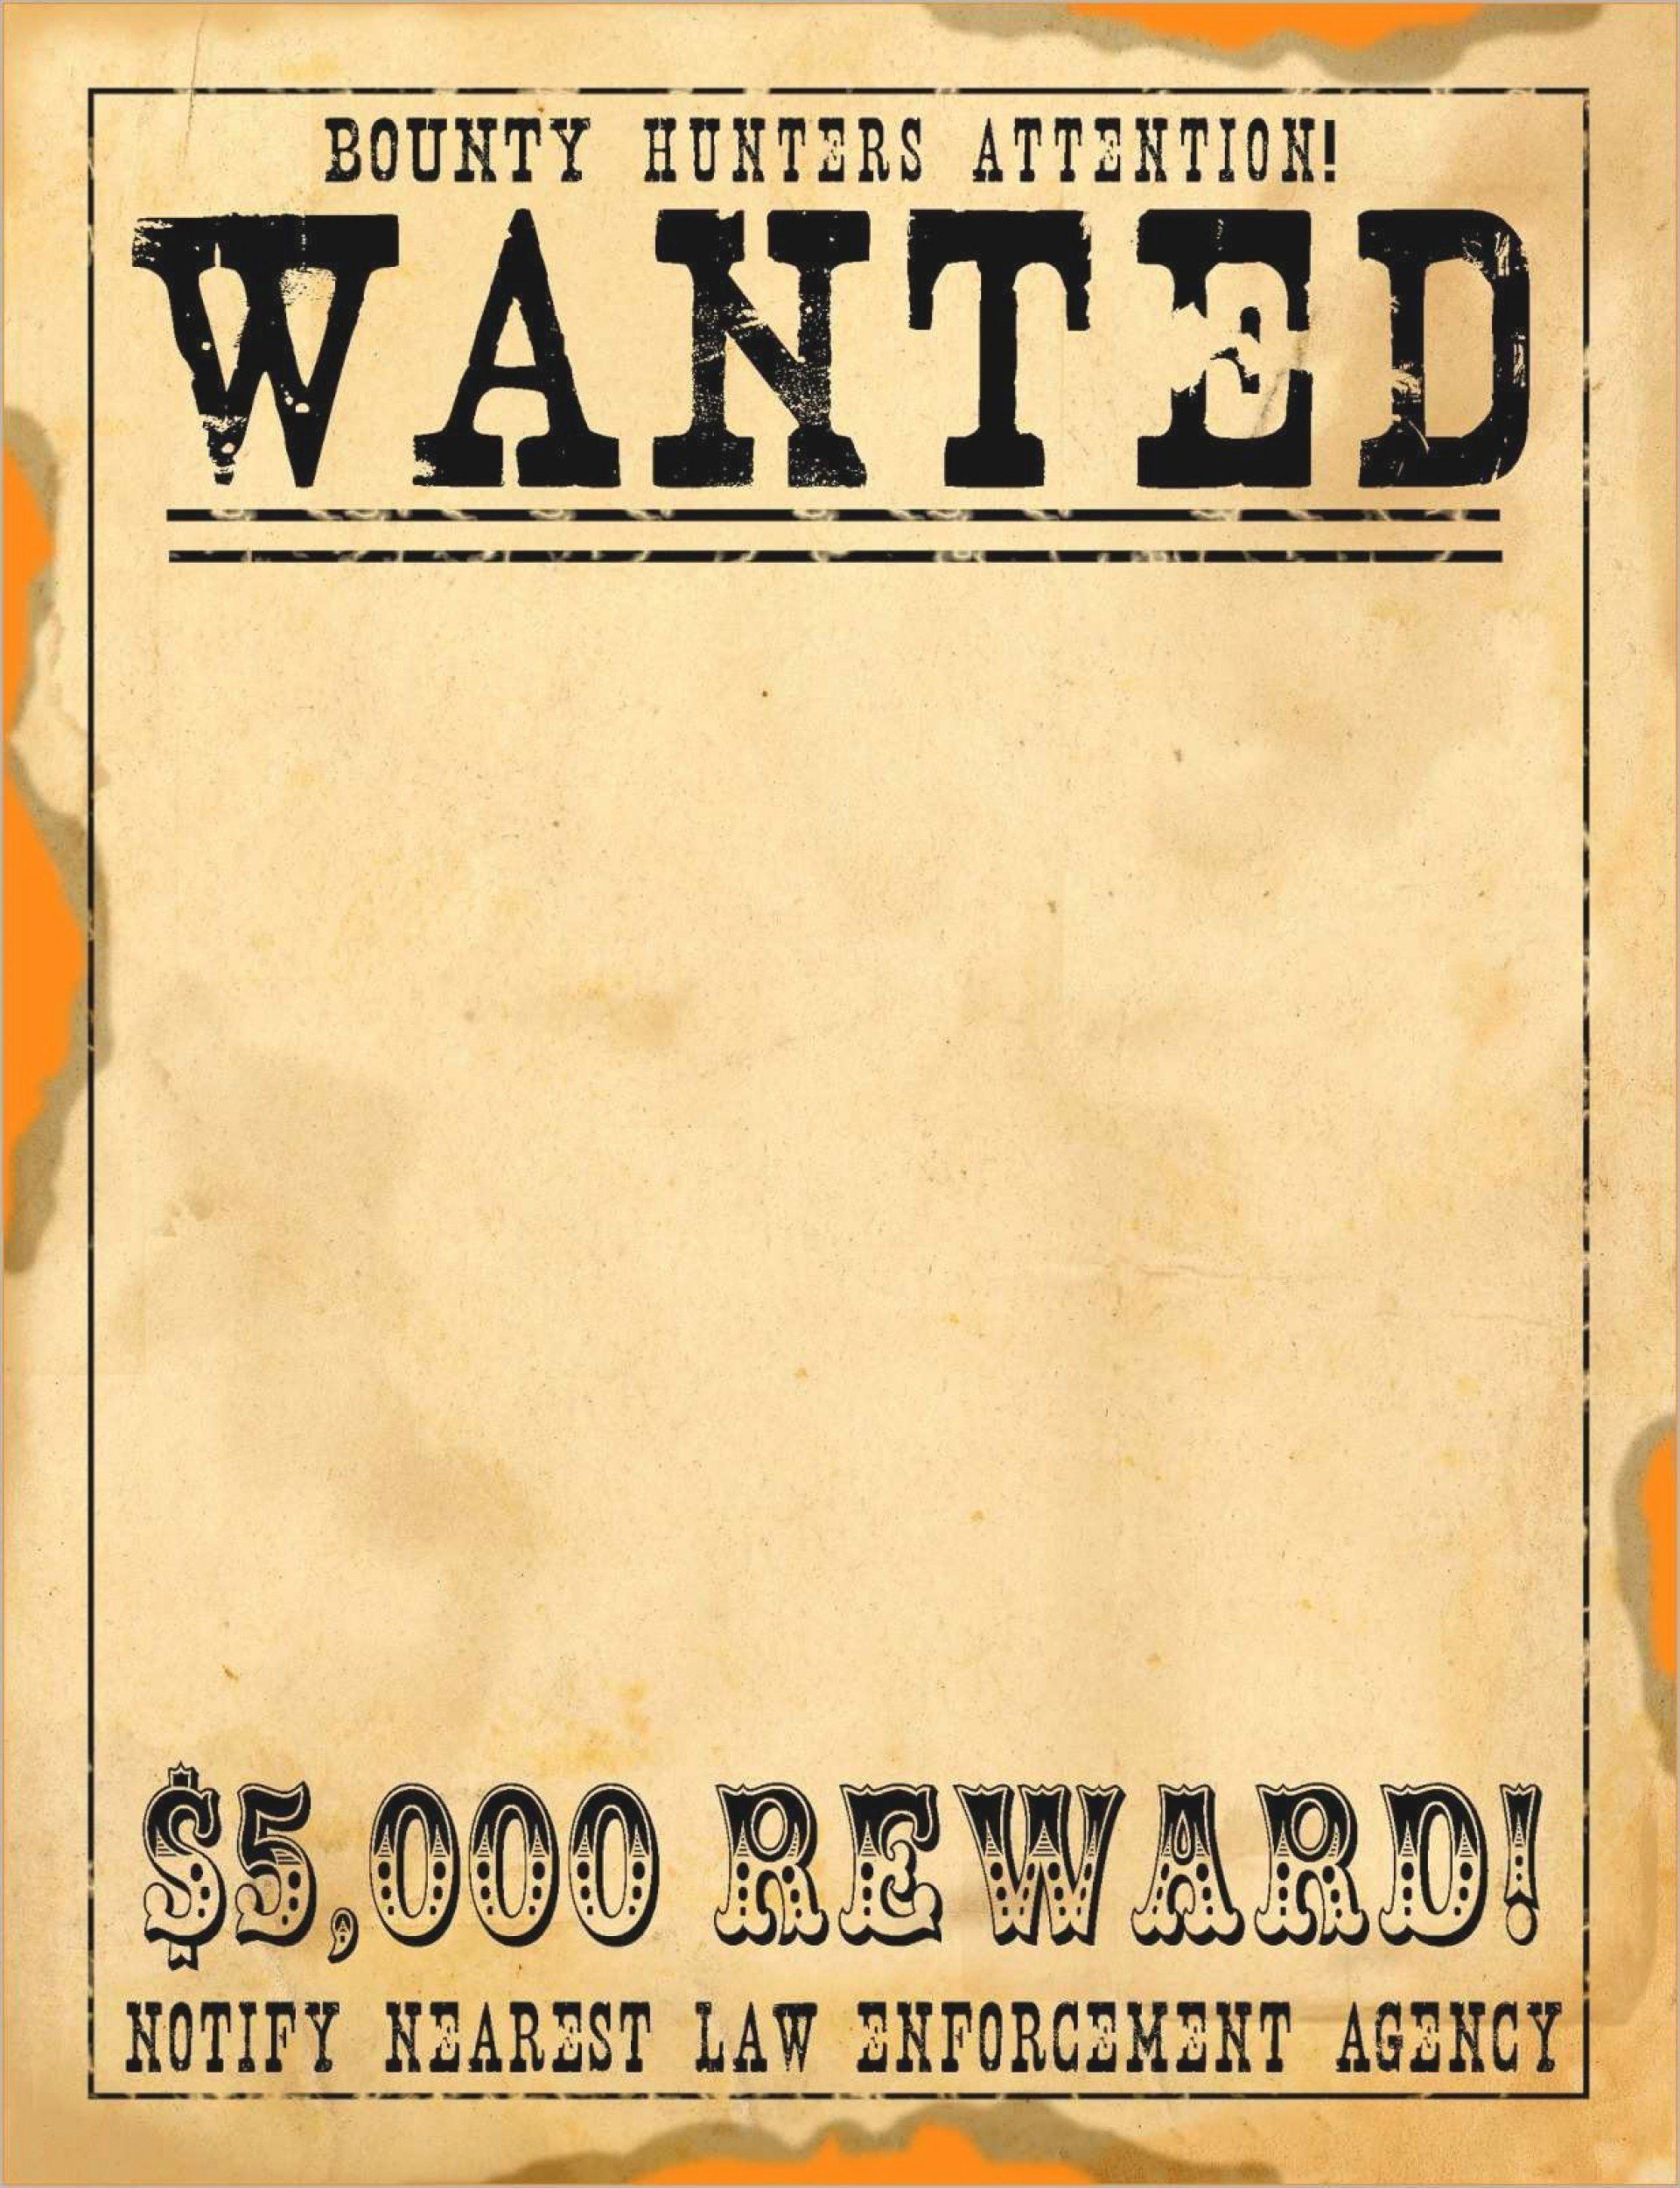 Wanted Poster Template Google Docs Fresh 029 Help Wanted Poster Template Google Docs Free Printable Word Template Poster Template Poster Template Free